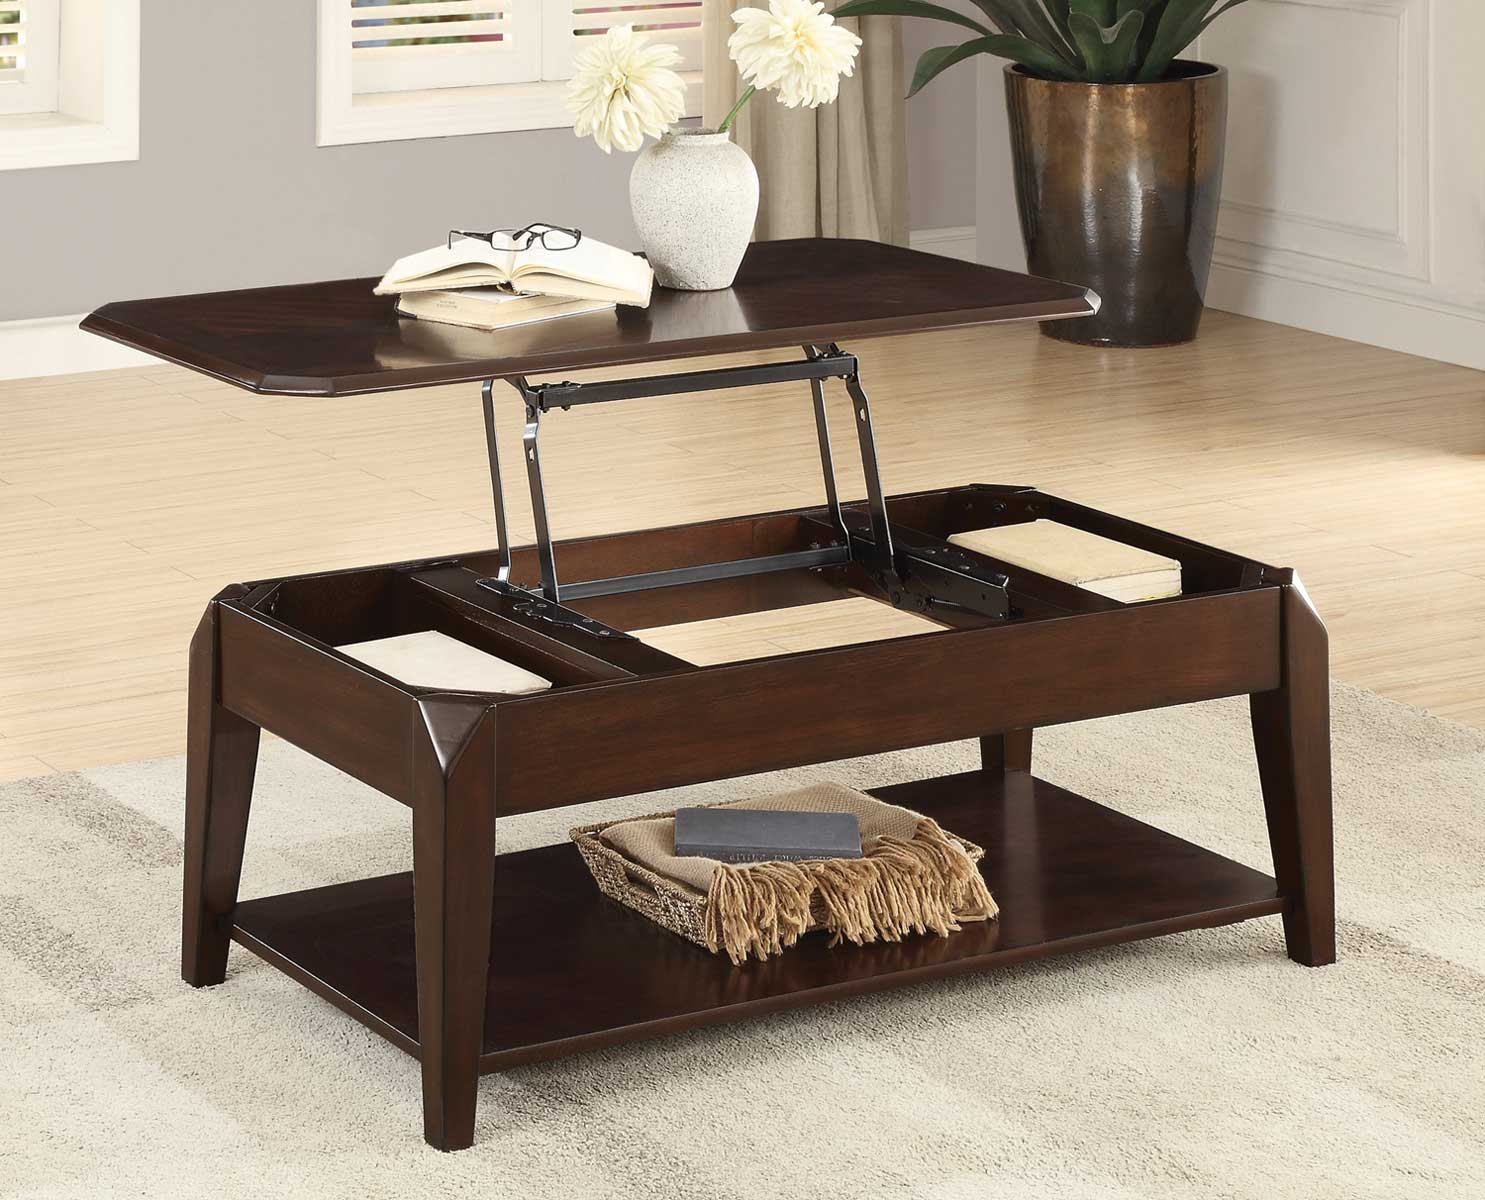 homelegance sikeston warm cherry lift top coffee table dallas tx occasional tables furniture. Black Bedroom Furniture Sets. Home Design Ideas